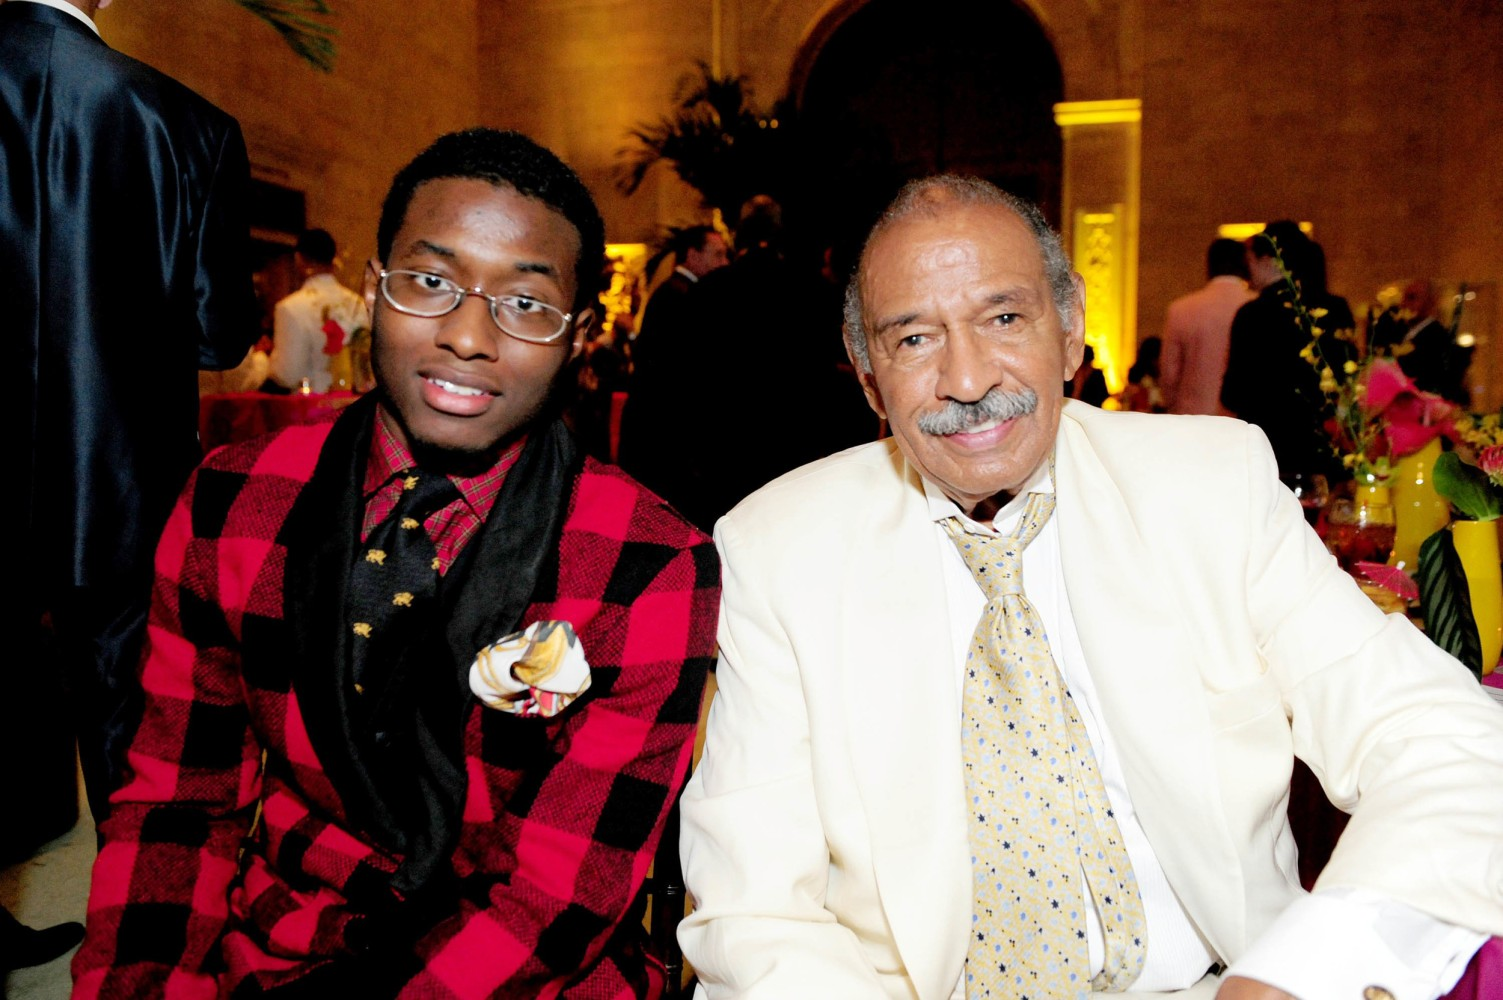 John Conyers III Was Once Arrested On Suspicion Of Domestic Abuse